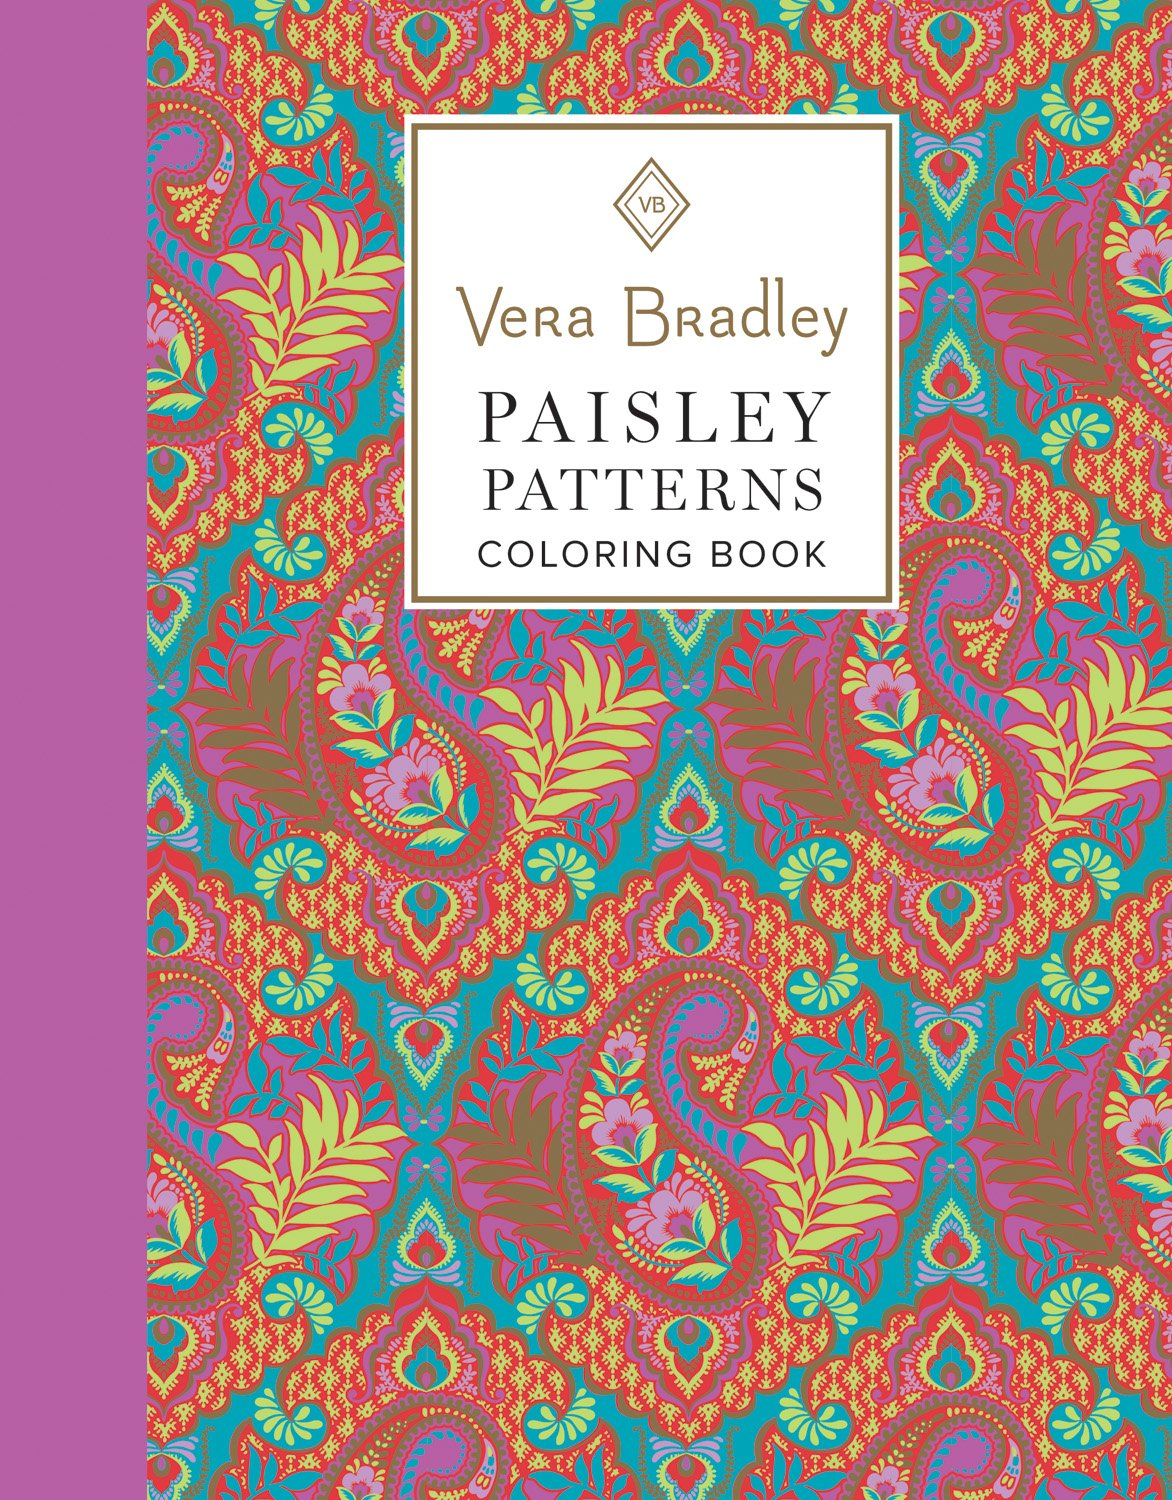 Amazon Vera Bradley Paisley Patterns Coloring Book Design Originals 40 Authentic Designs 16 Gift Tags 8 Notecards Plus Pattern Guide Art